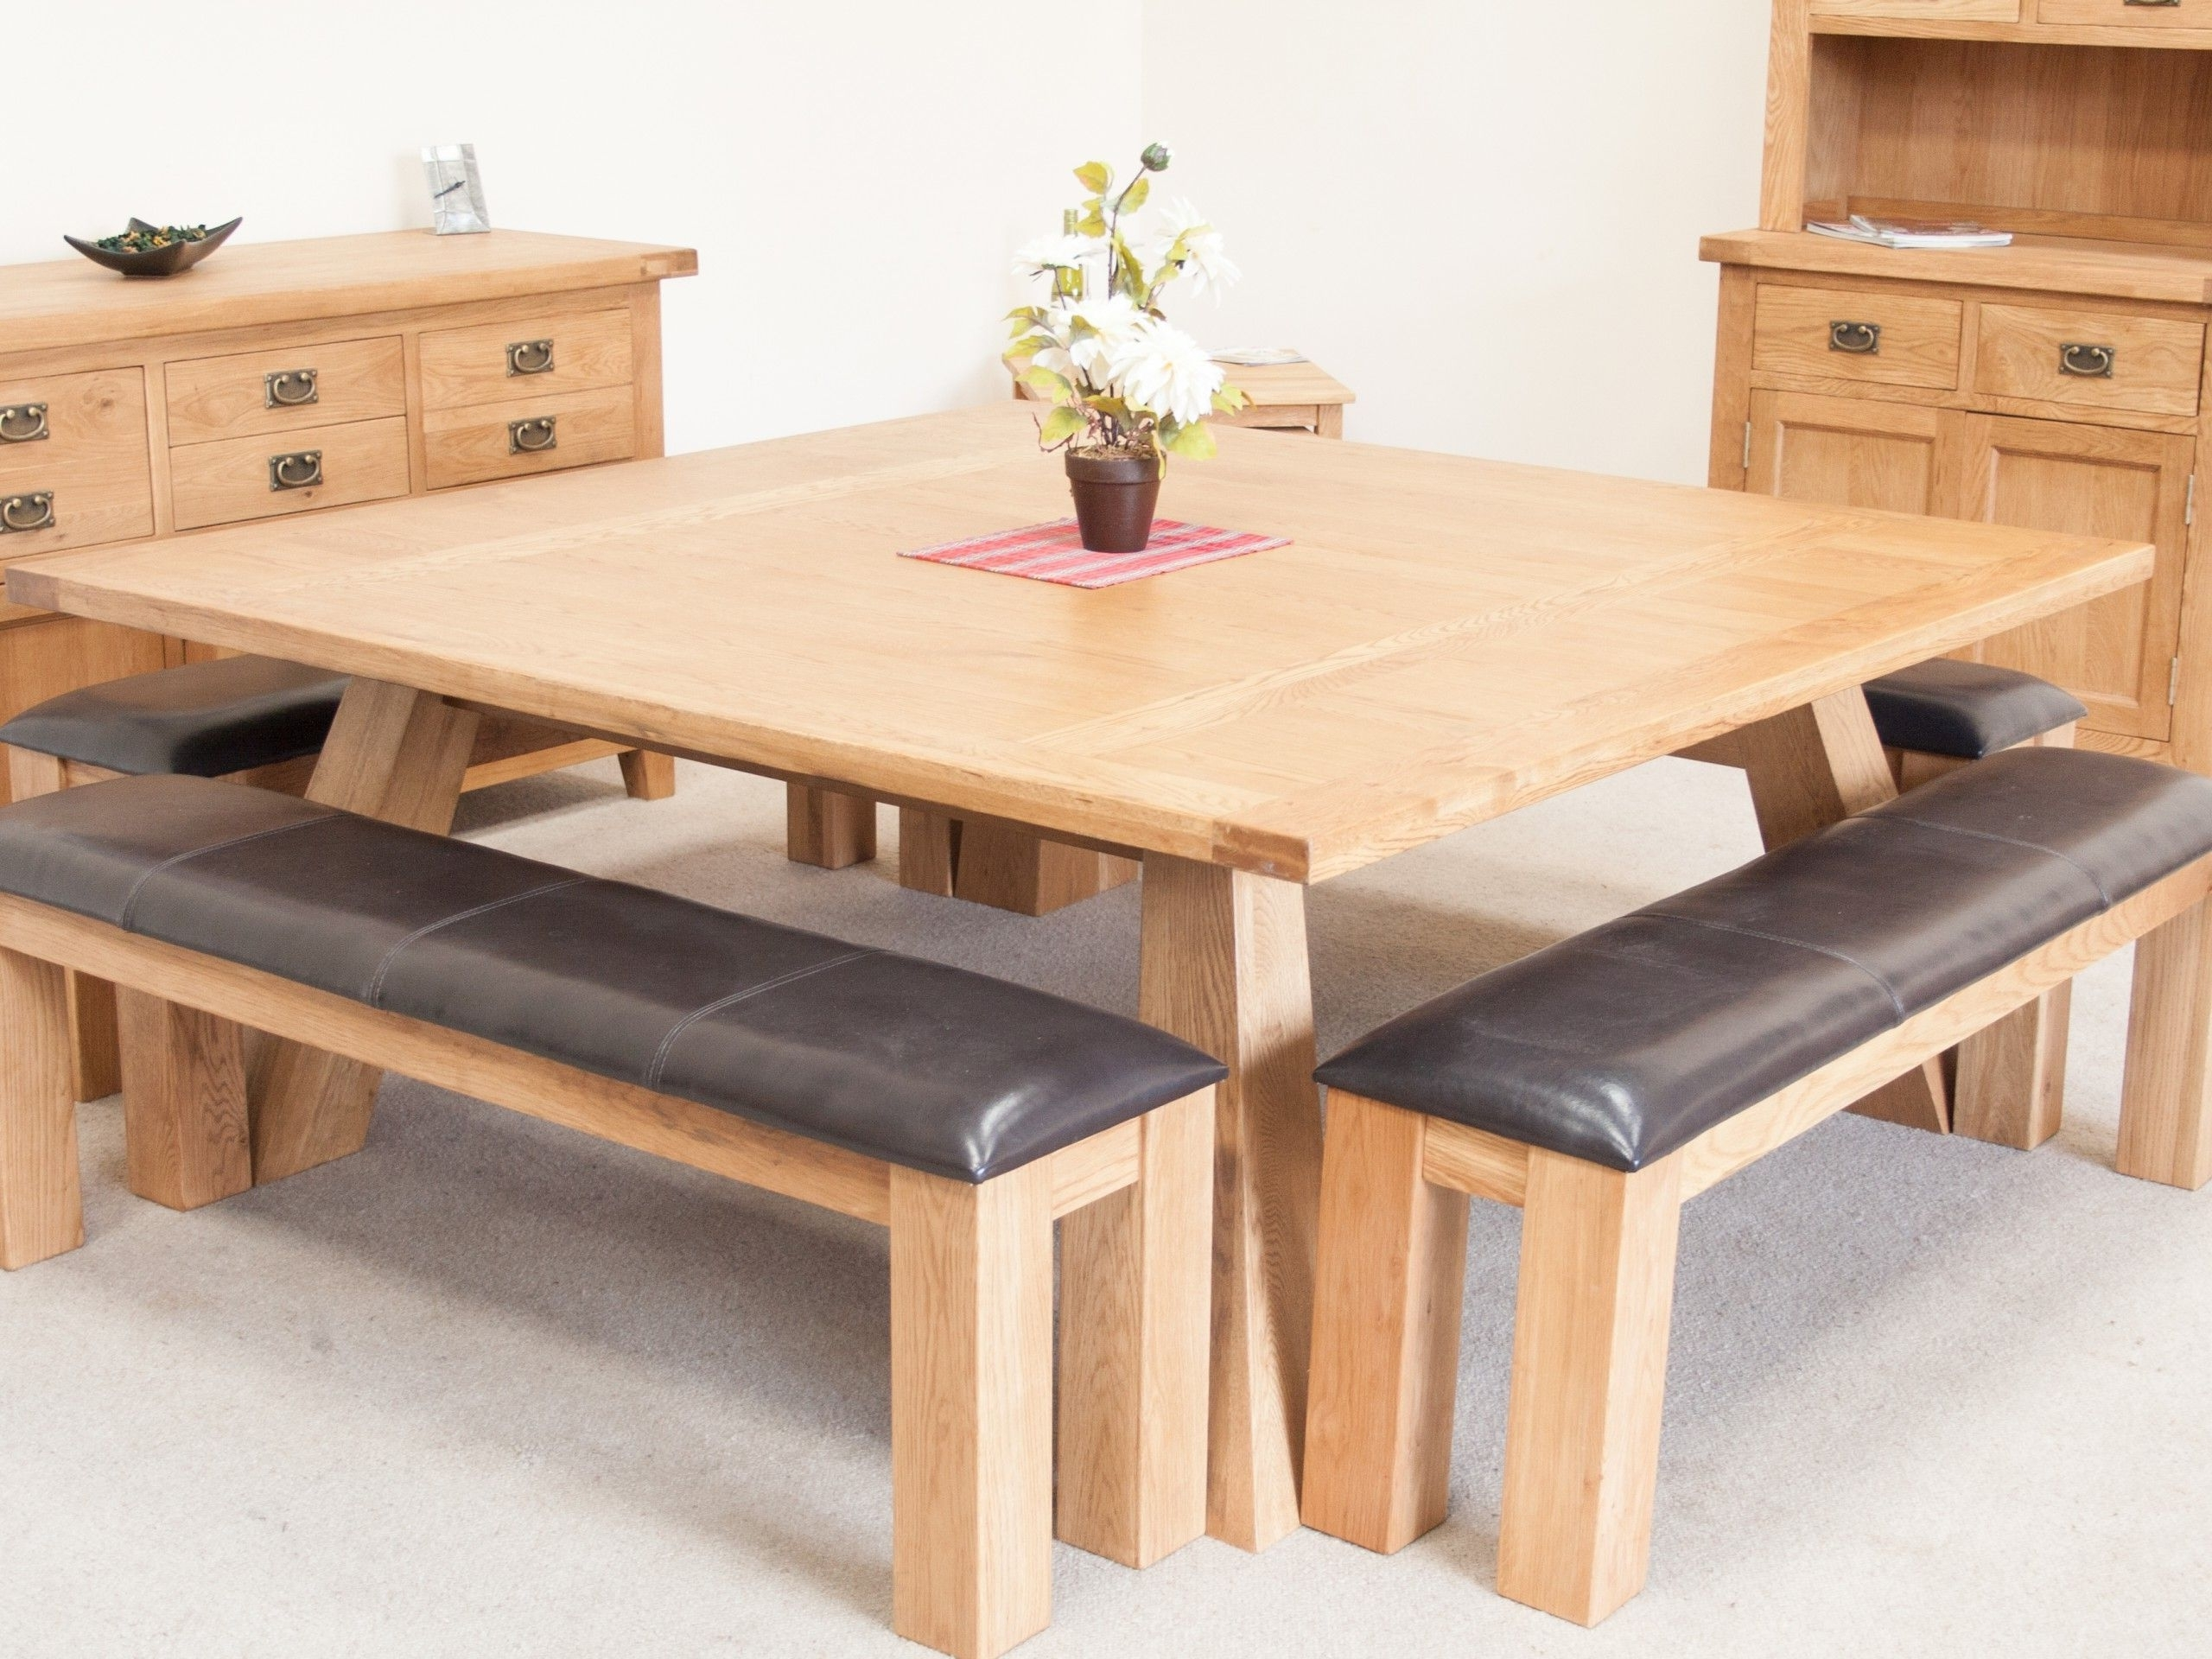 2017 Square Oak Dining Tables Inside Country Oak 1.8M Large Square Oak Dining Room Table (Gallery 11 of 25)